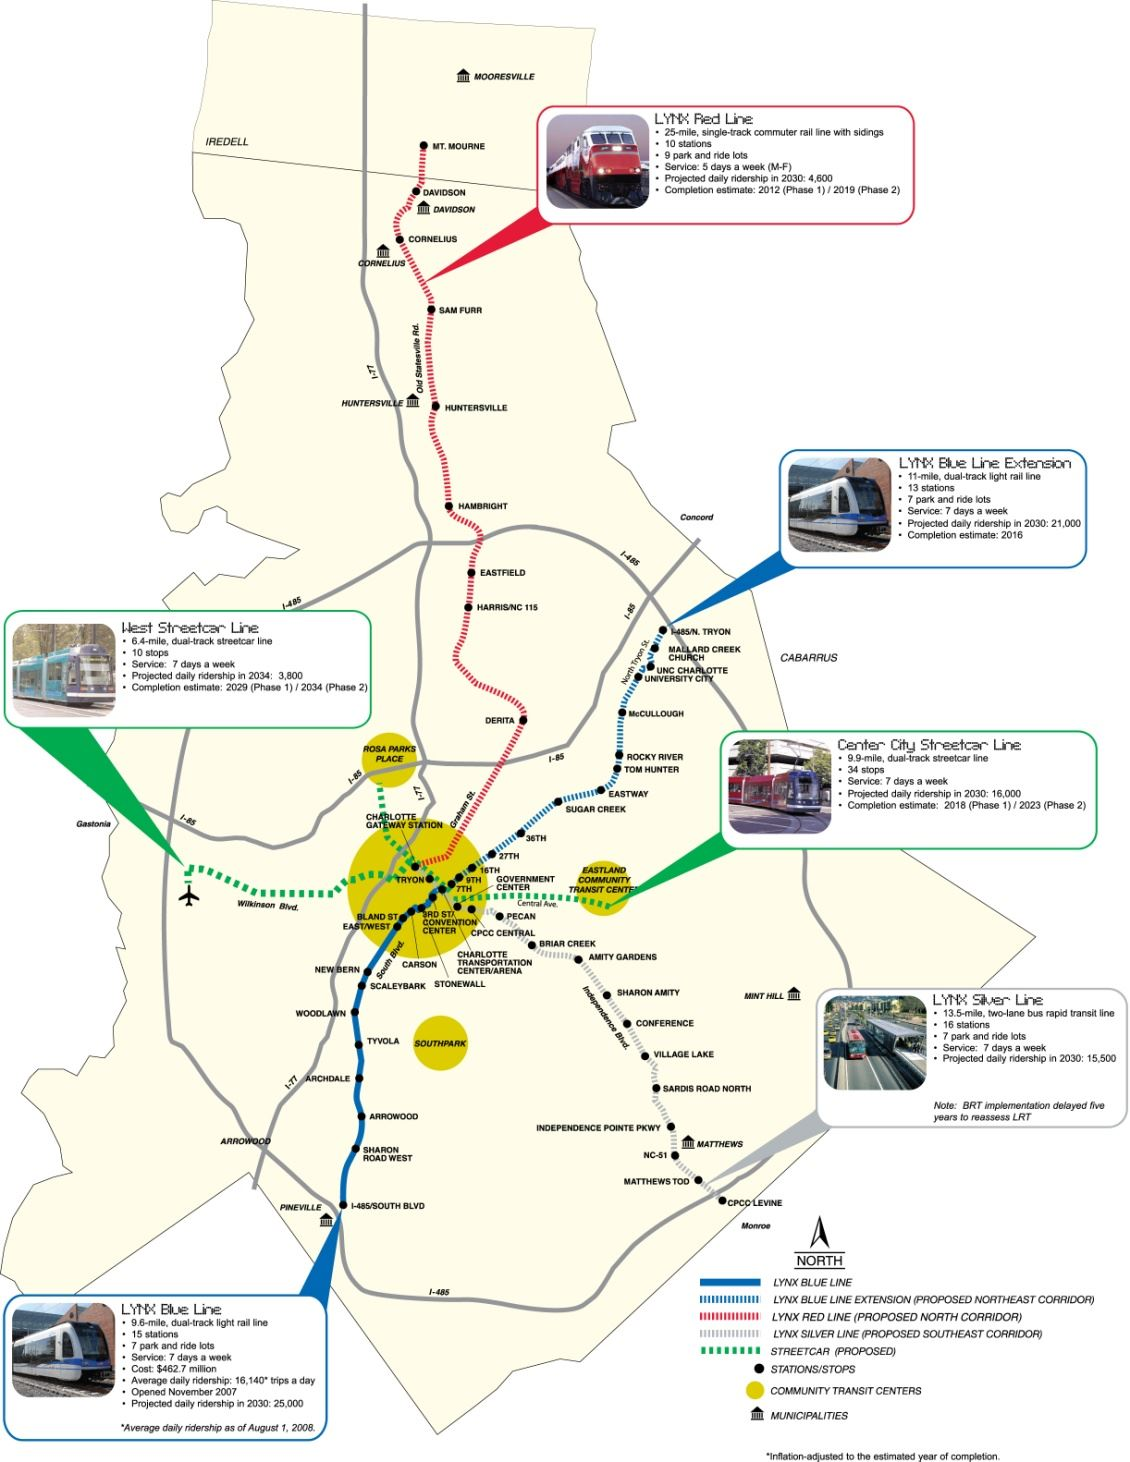 Map T-7 2030 Transit Corridor System Plan, adopted by the MTC in 2007